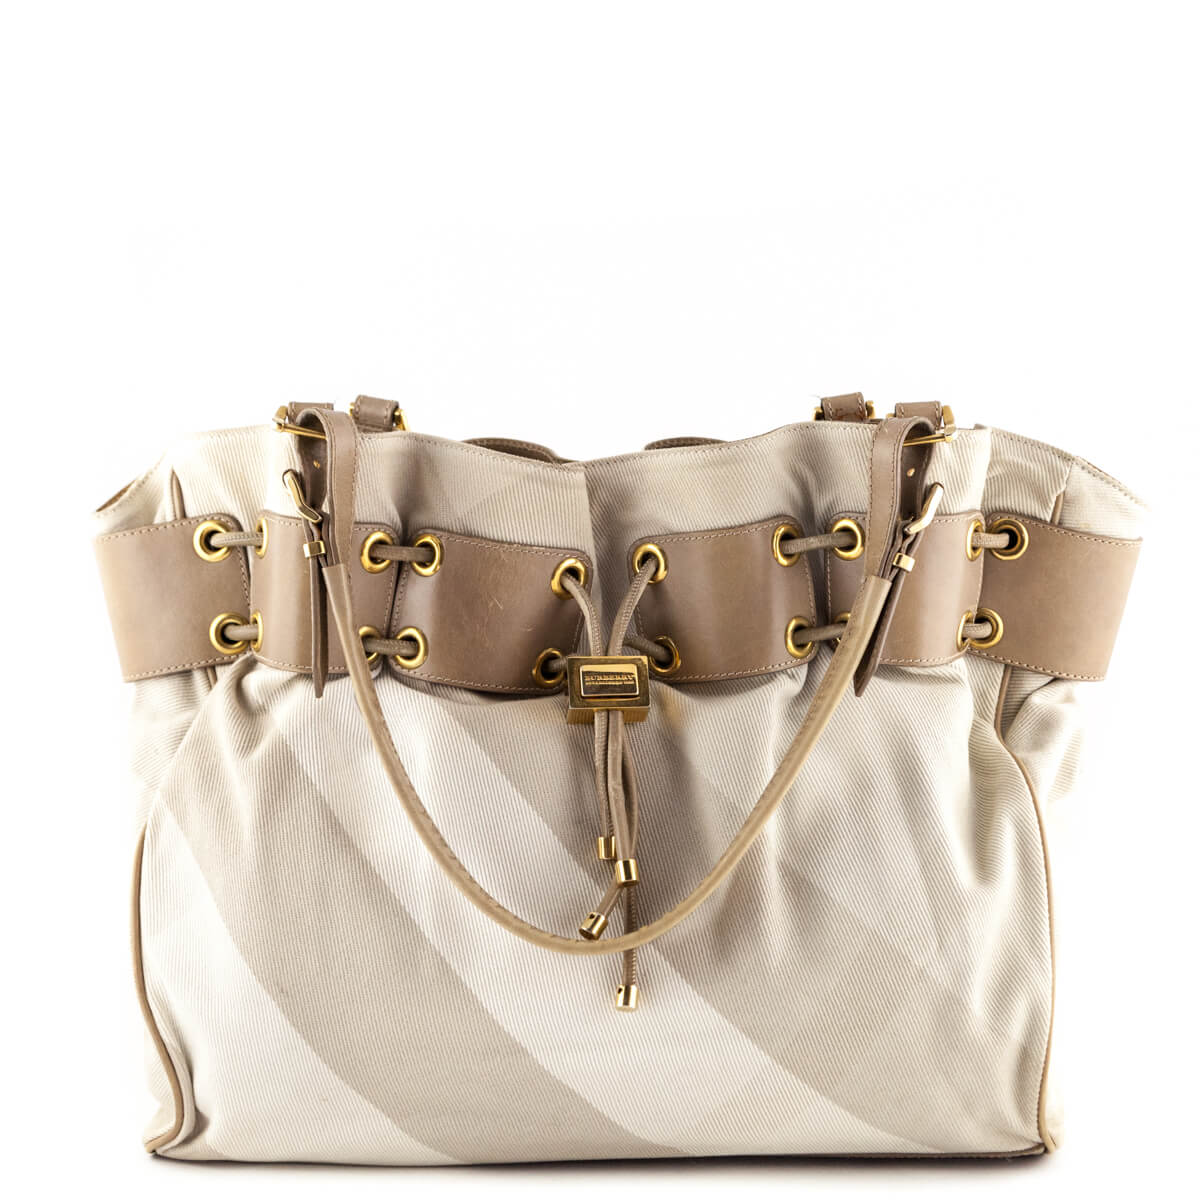 34128baa81b Burberry Off White Nova Check Drawstring Shopper - LOVE that BAG - Preowned  Authentic Designer Handbags ...